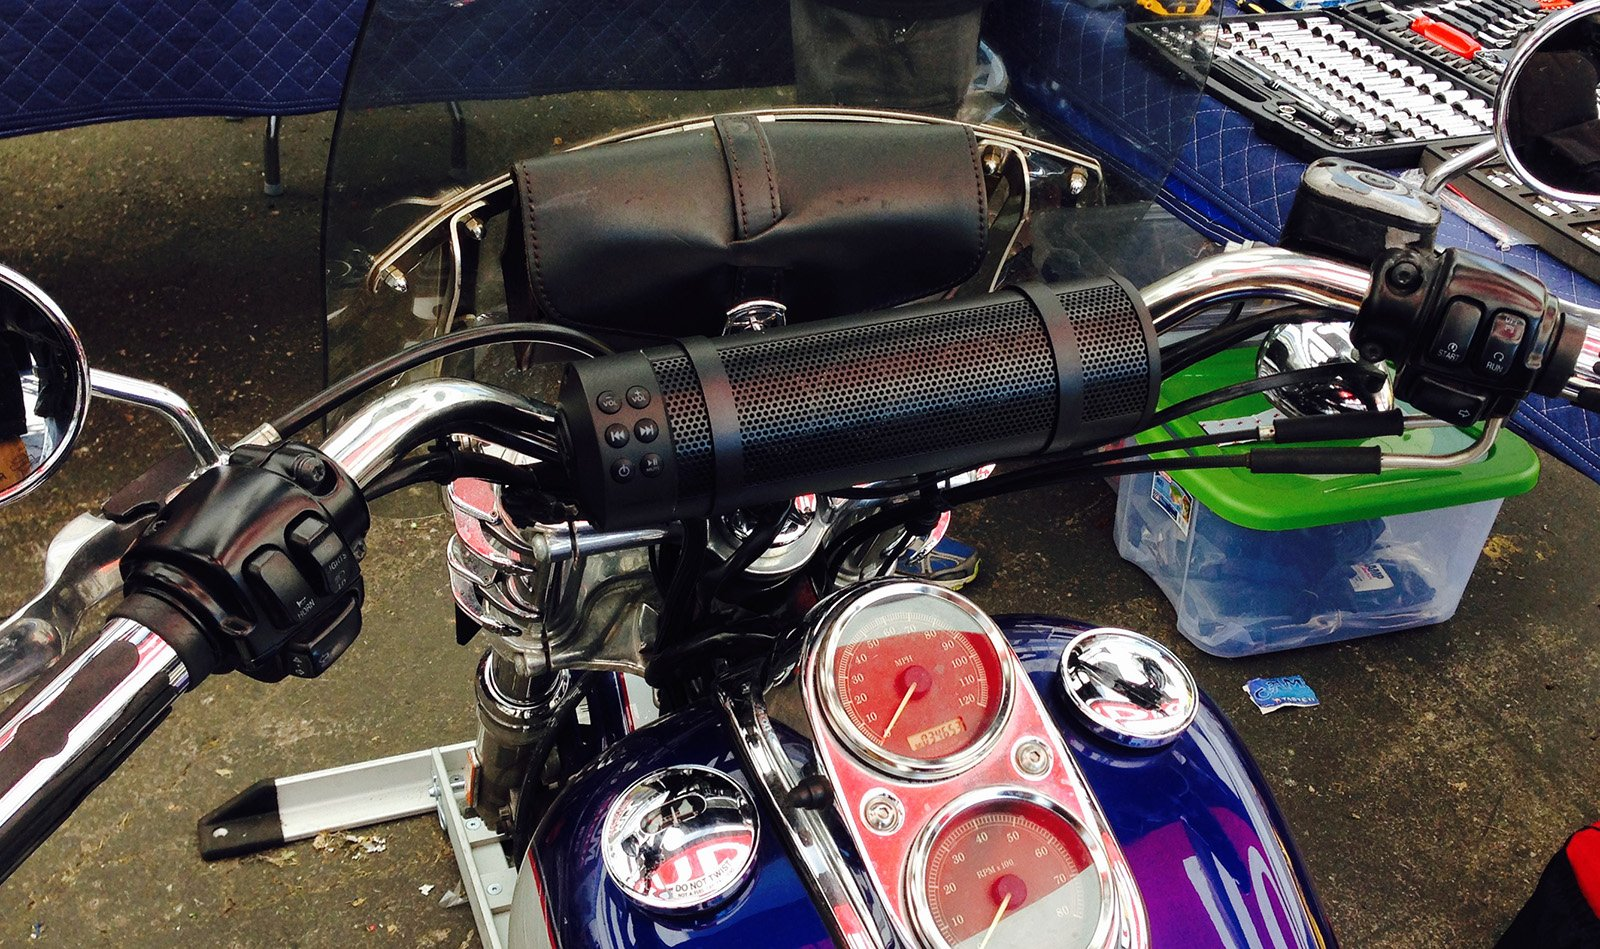 MTX MUDHSB-B Universal 6 Speaker All Weather Handlebar Sound System by MTX (Image #8)